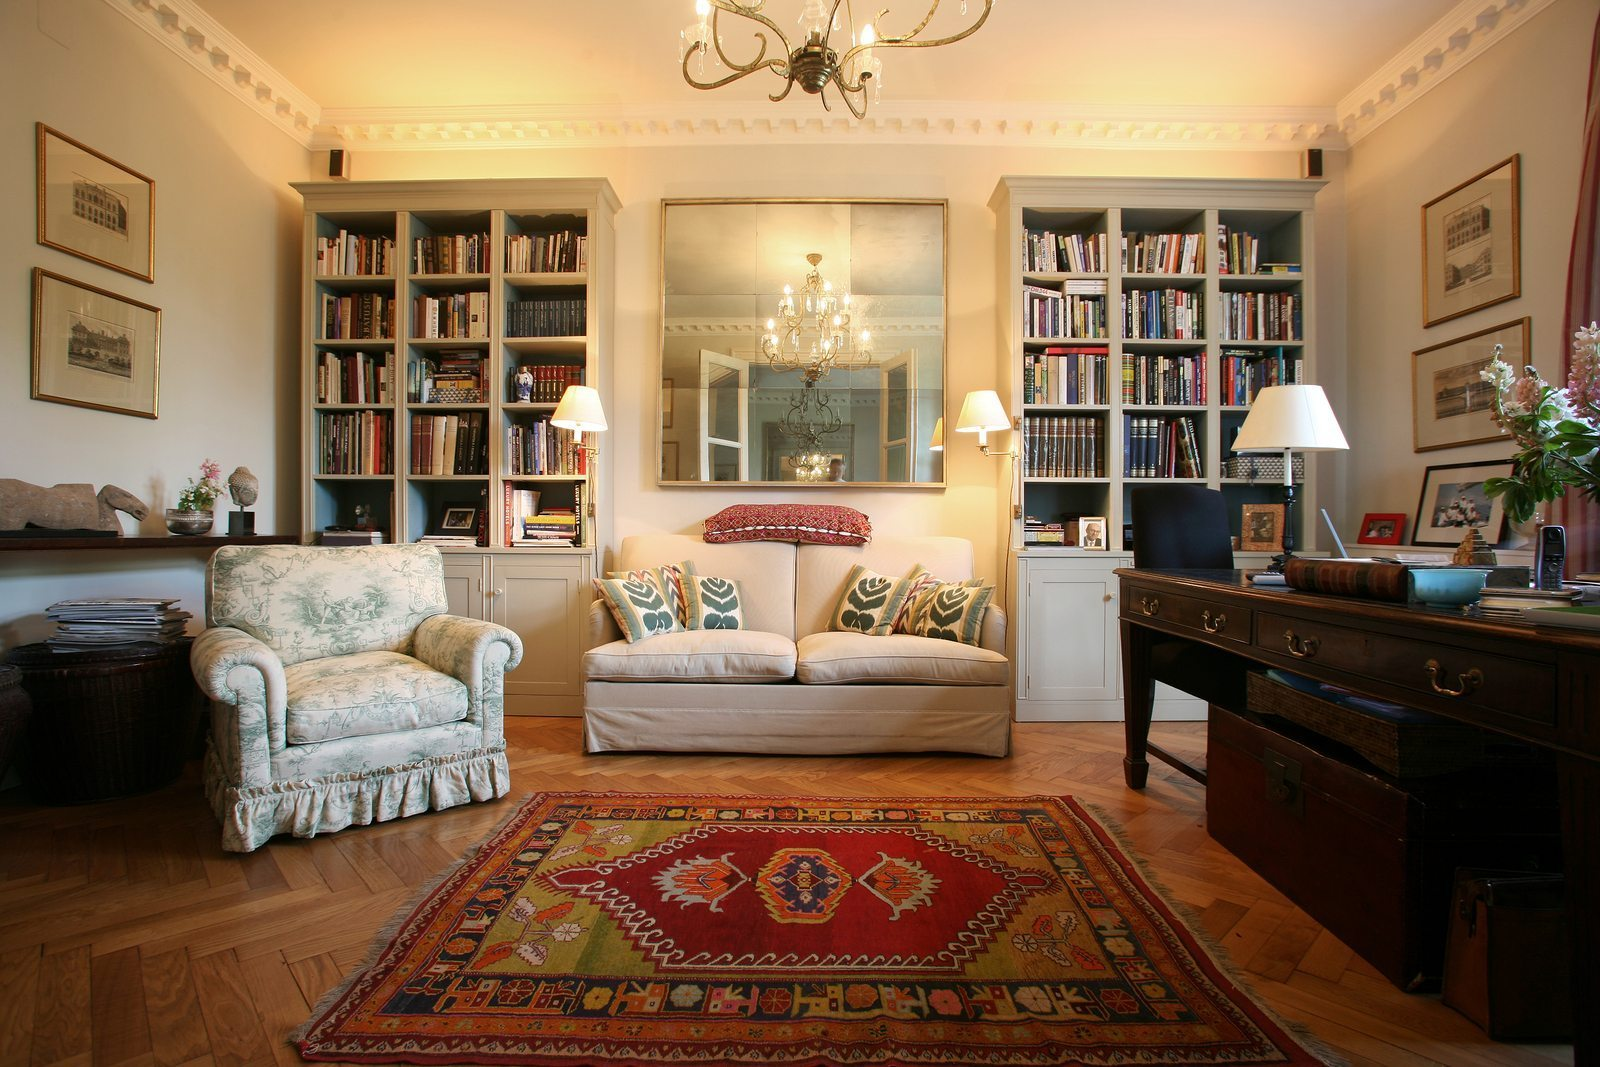 A living room that mixes solid colors and patterns with books and bookshelves in the background